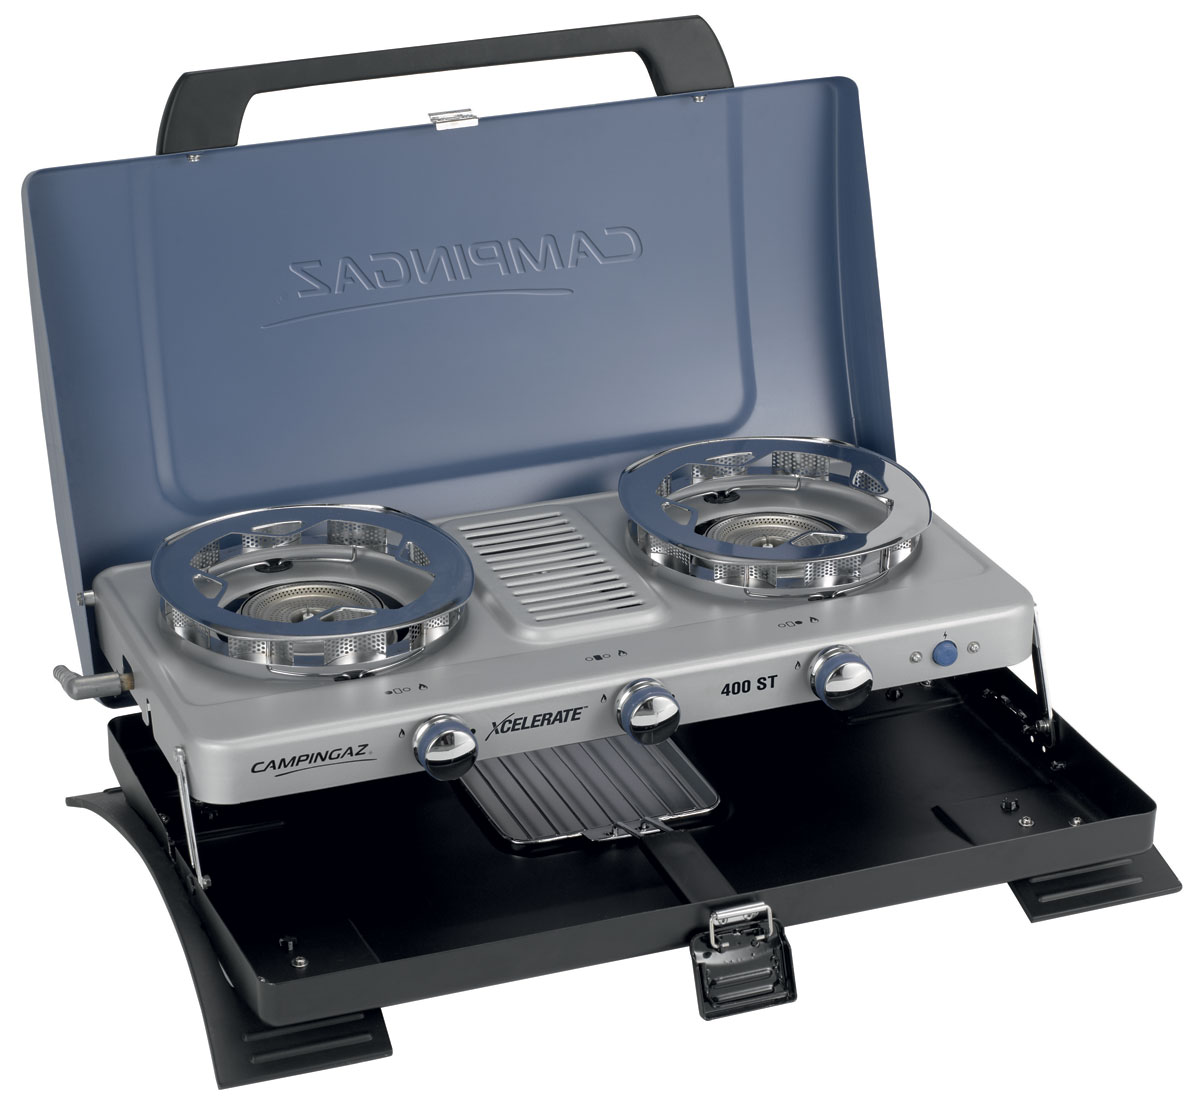 Campingaz 400-ST Double Burner Stove With Toaster